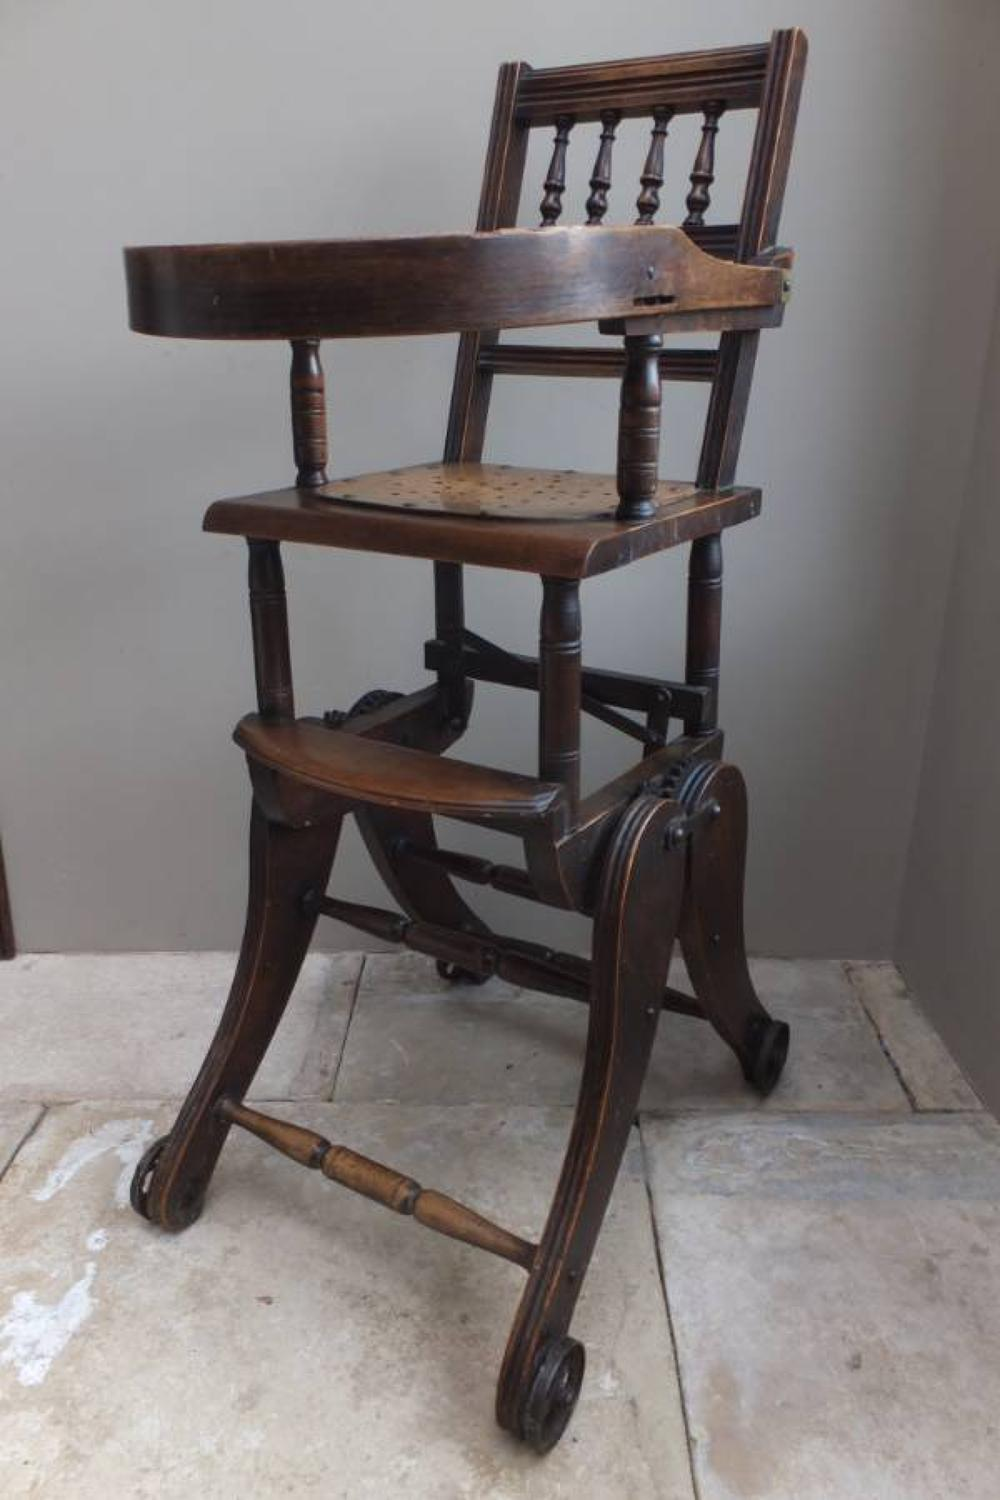 Victorian Metamorphic Childs High Chair - Converts to Rocker - c.1885